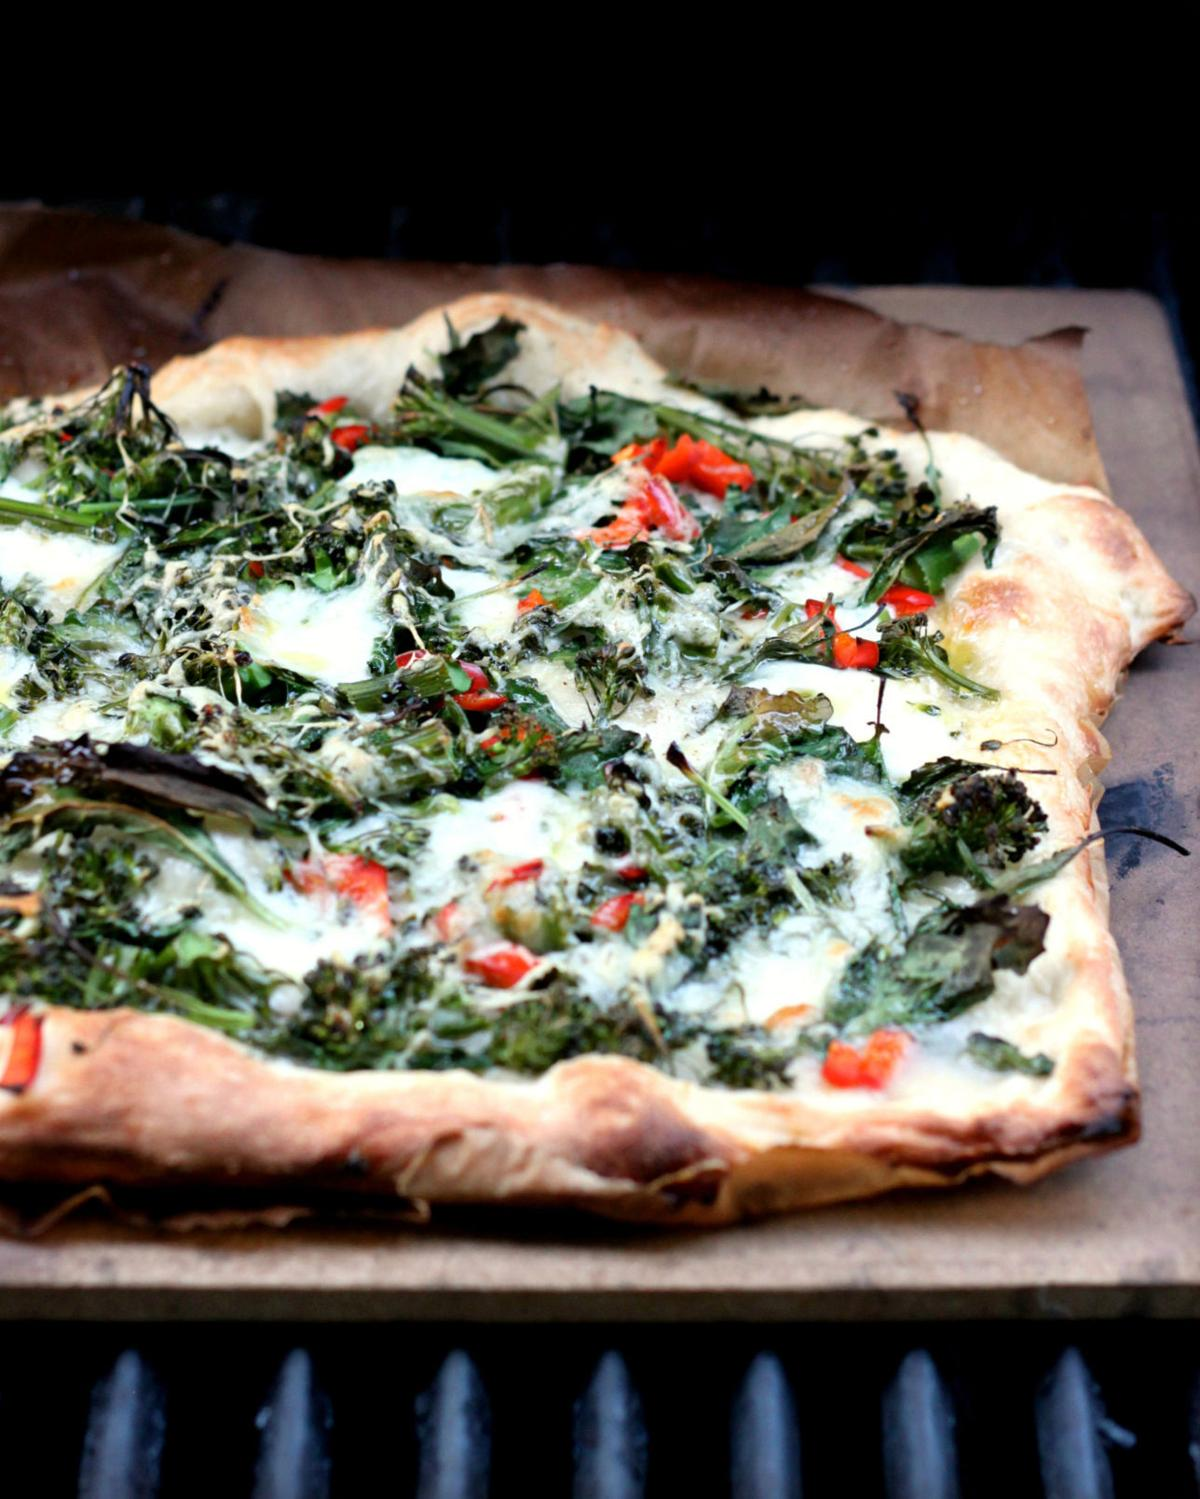 Grilled Pizza With Baby Kale, Broccolini and Chiles